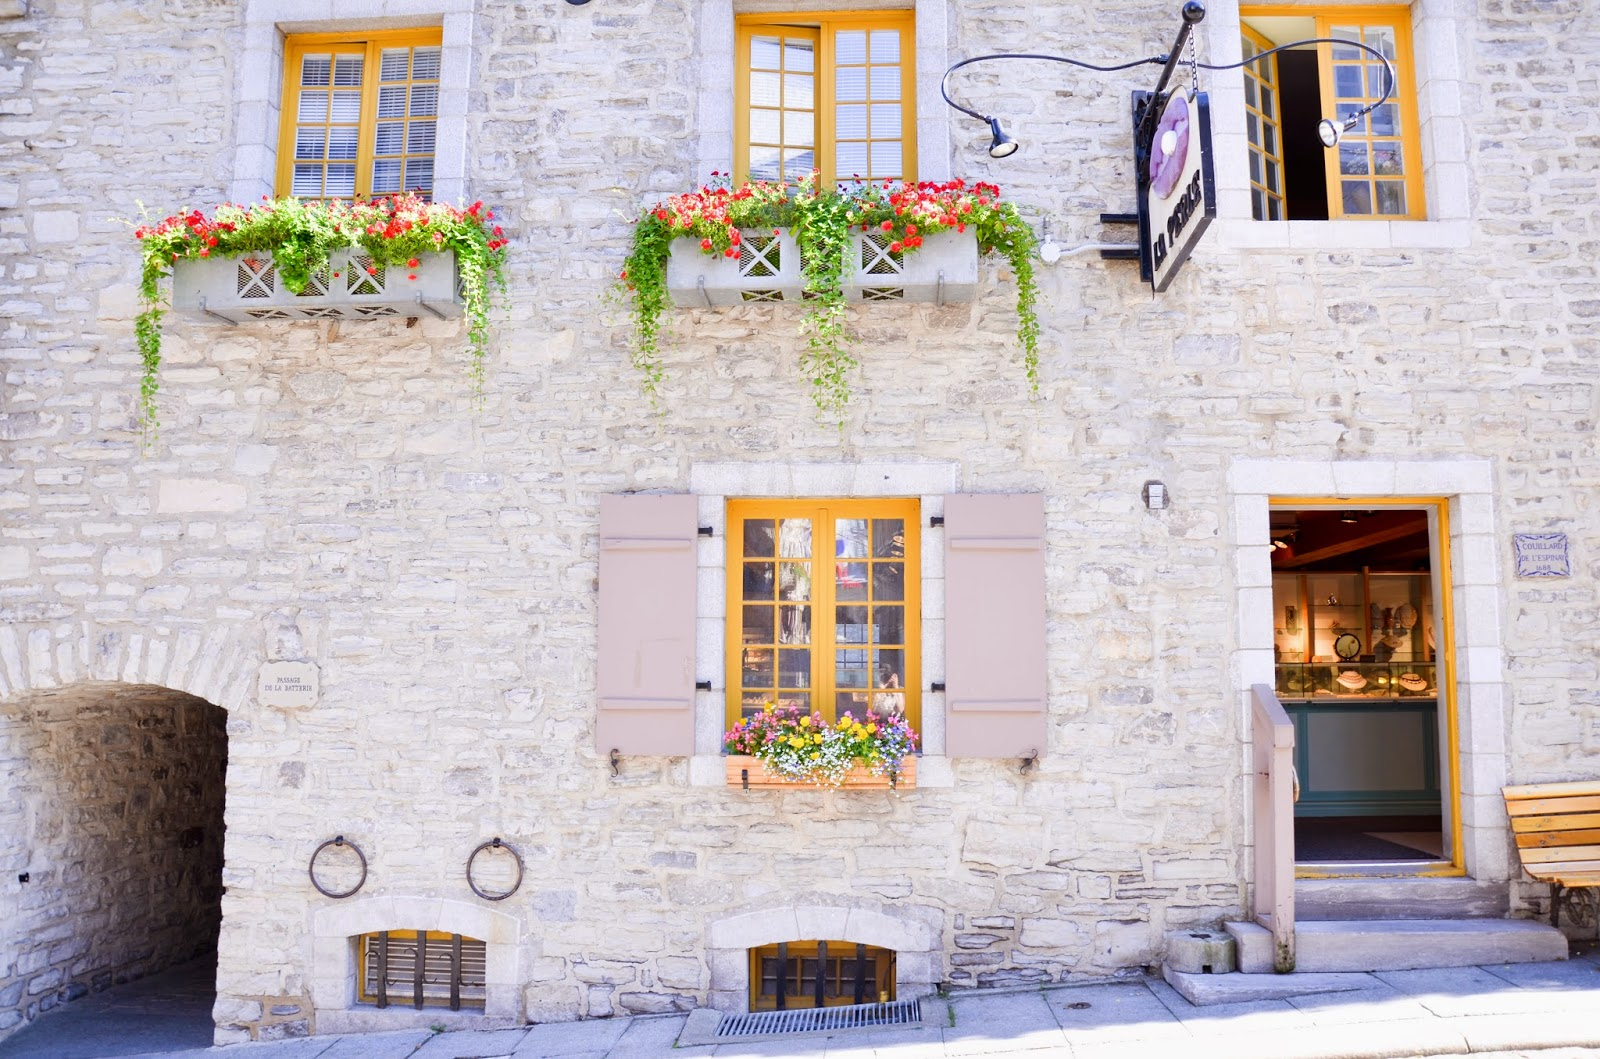 Beautiful flower baskets and yellow trip on doors and windows in Old Quebec, Quebec City